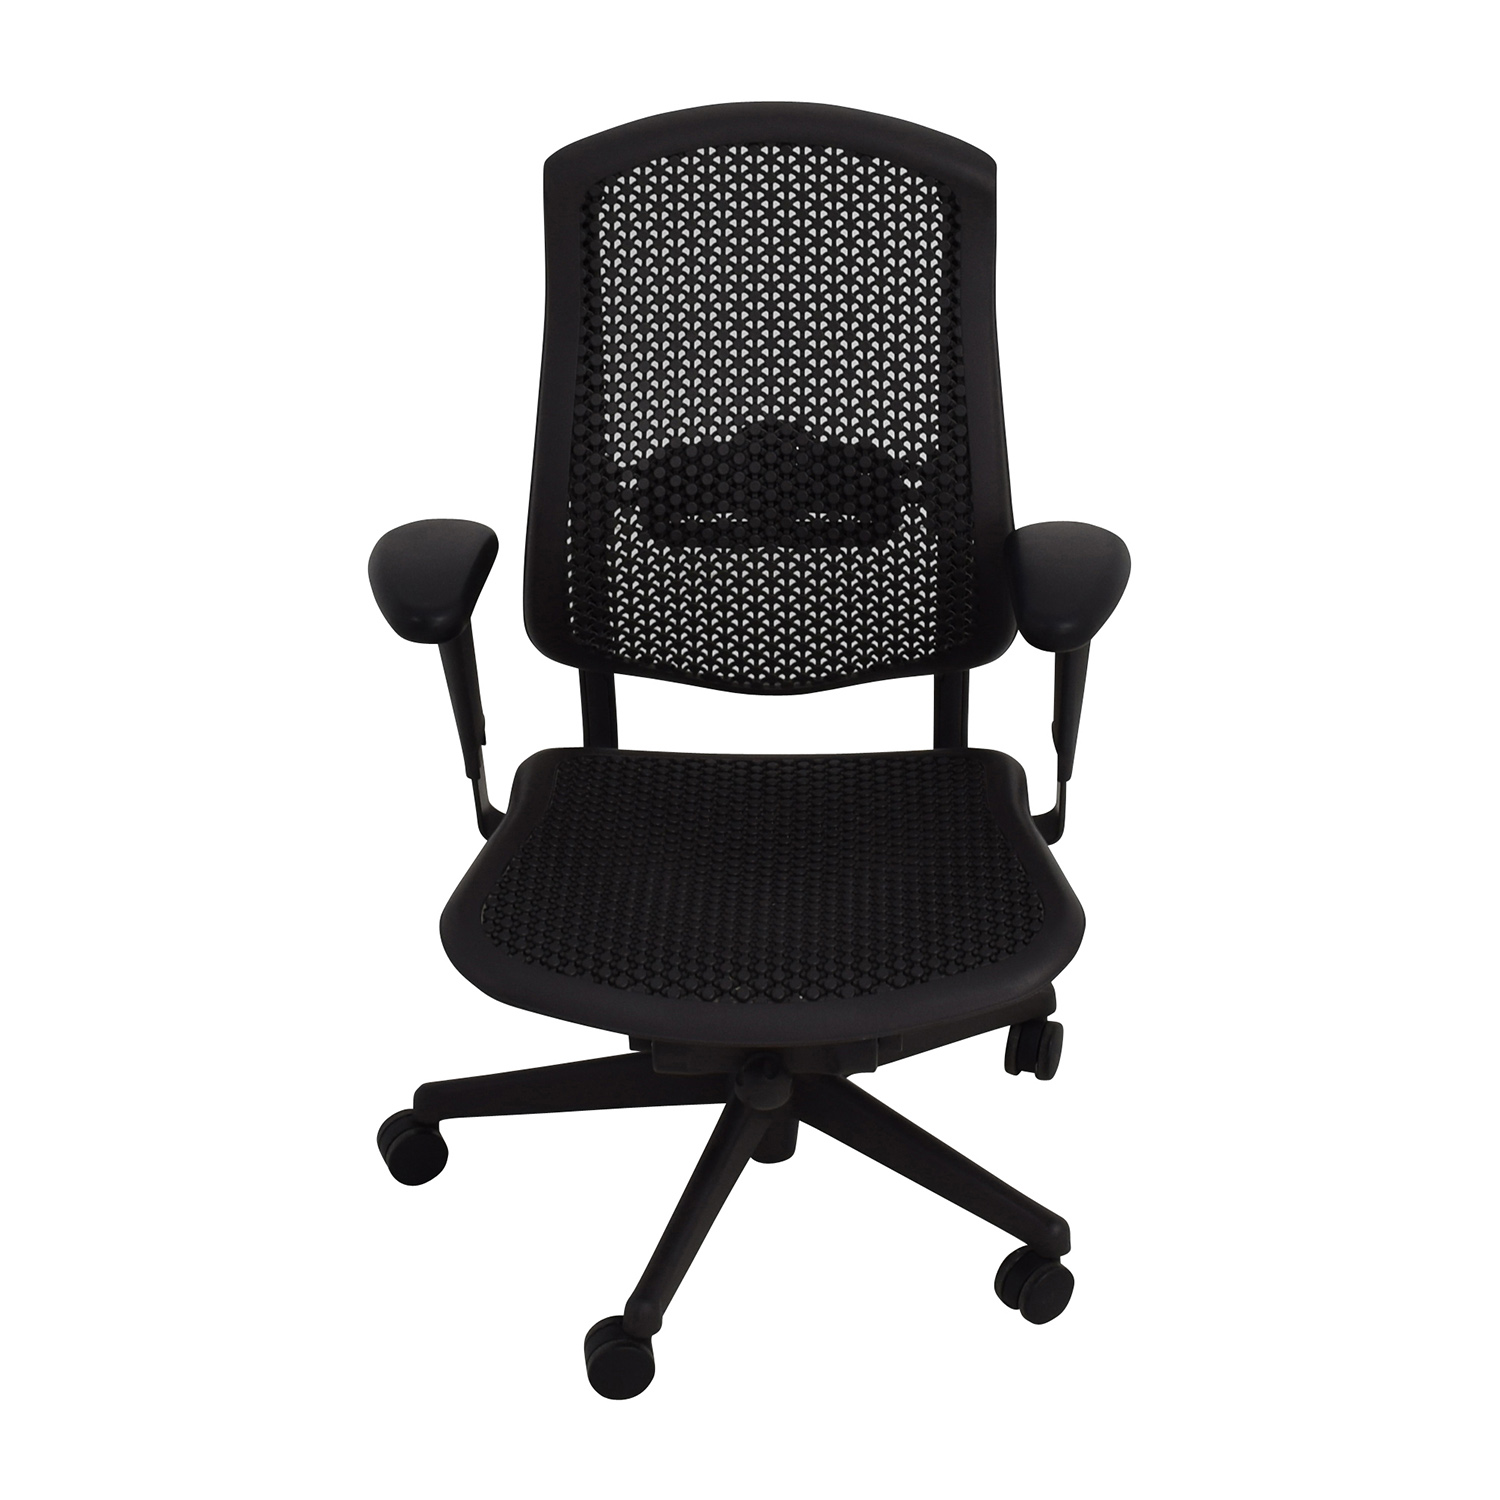 shop Herman Miller Herman Miller Biomorph Ergonomic Black Desk Chair online